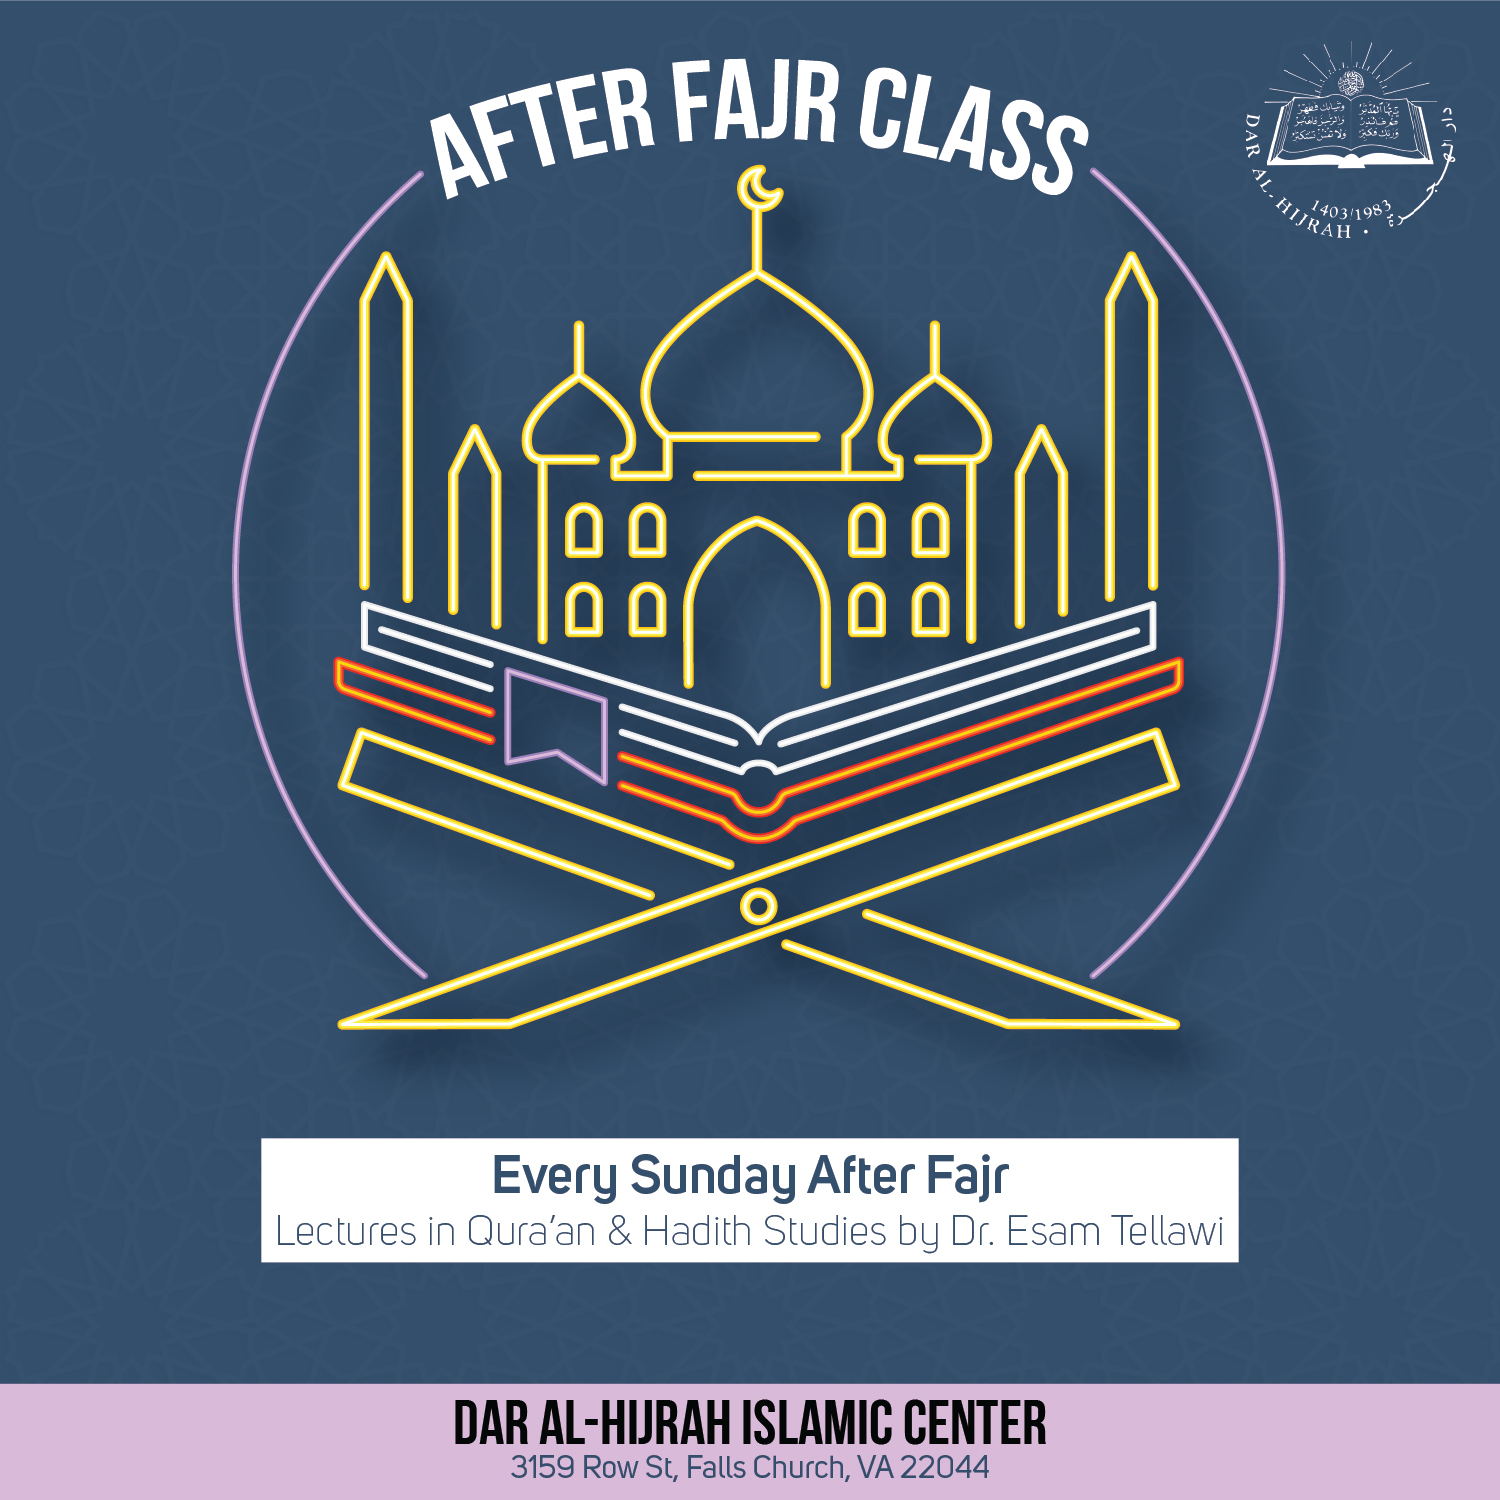 After Fajr Class - Dar Al-Hijrah 4